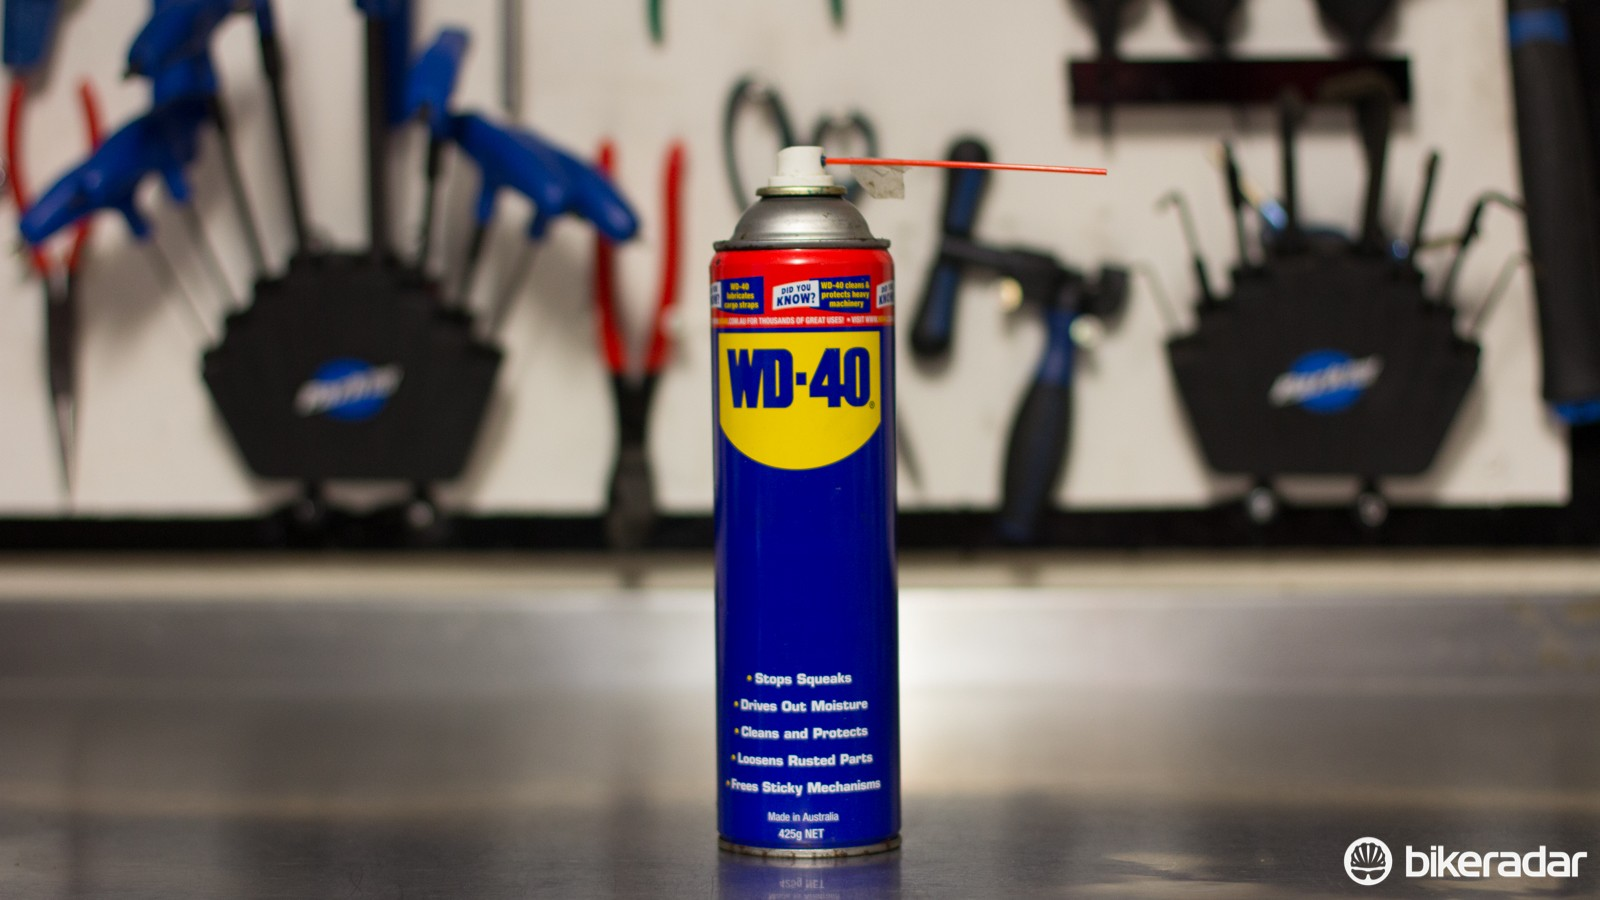 The age-old mistake: WD-40 is NOT a lubricant (at least not a good one for cycling)